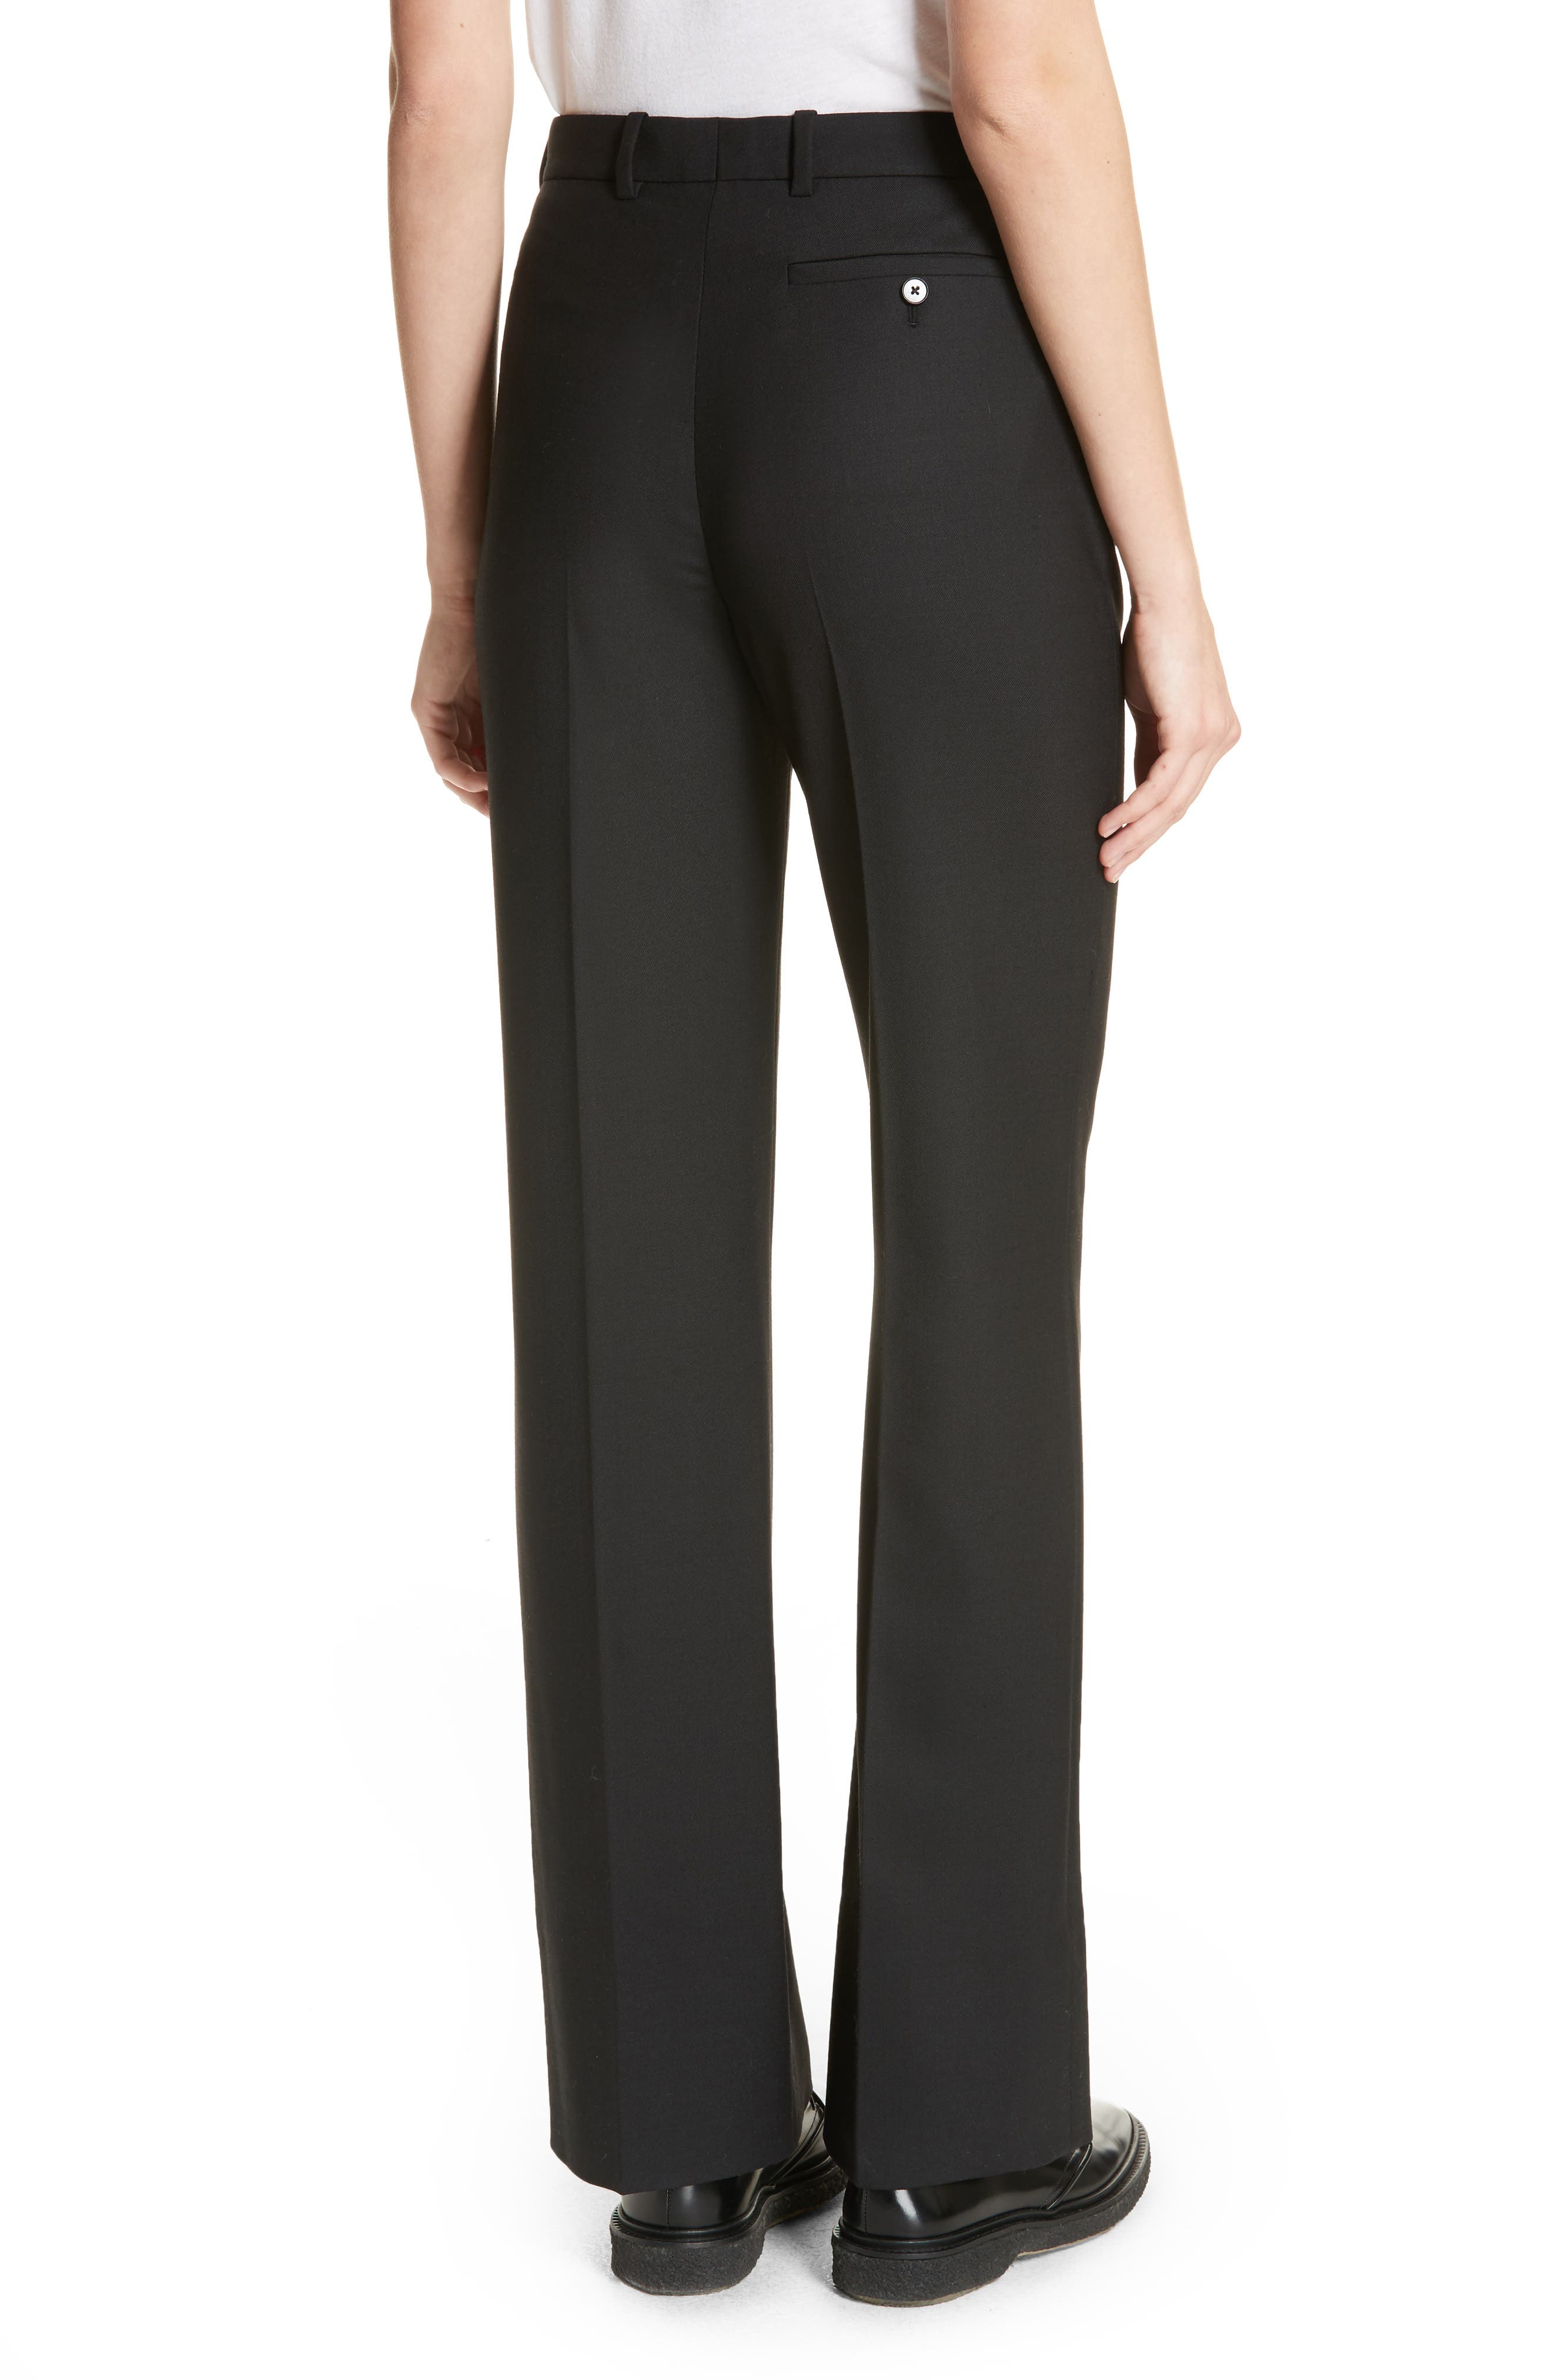 Tropez Wide Leg Trousers,                             Alternate thumbnail 2, color,                             Black